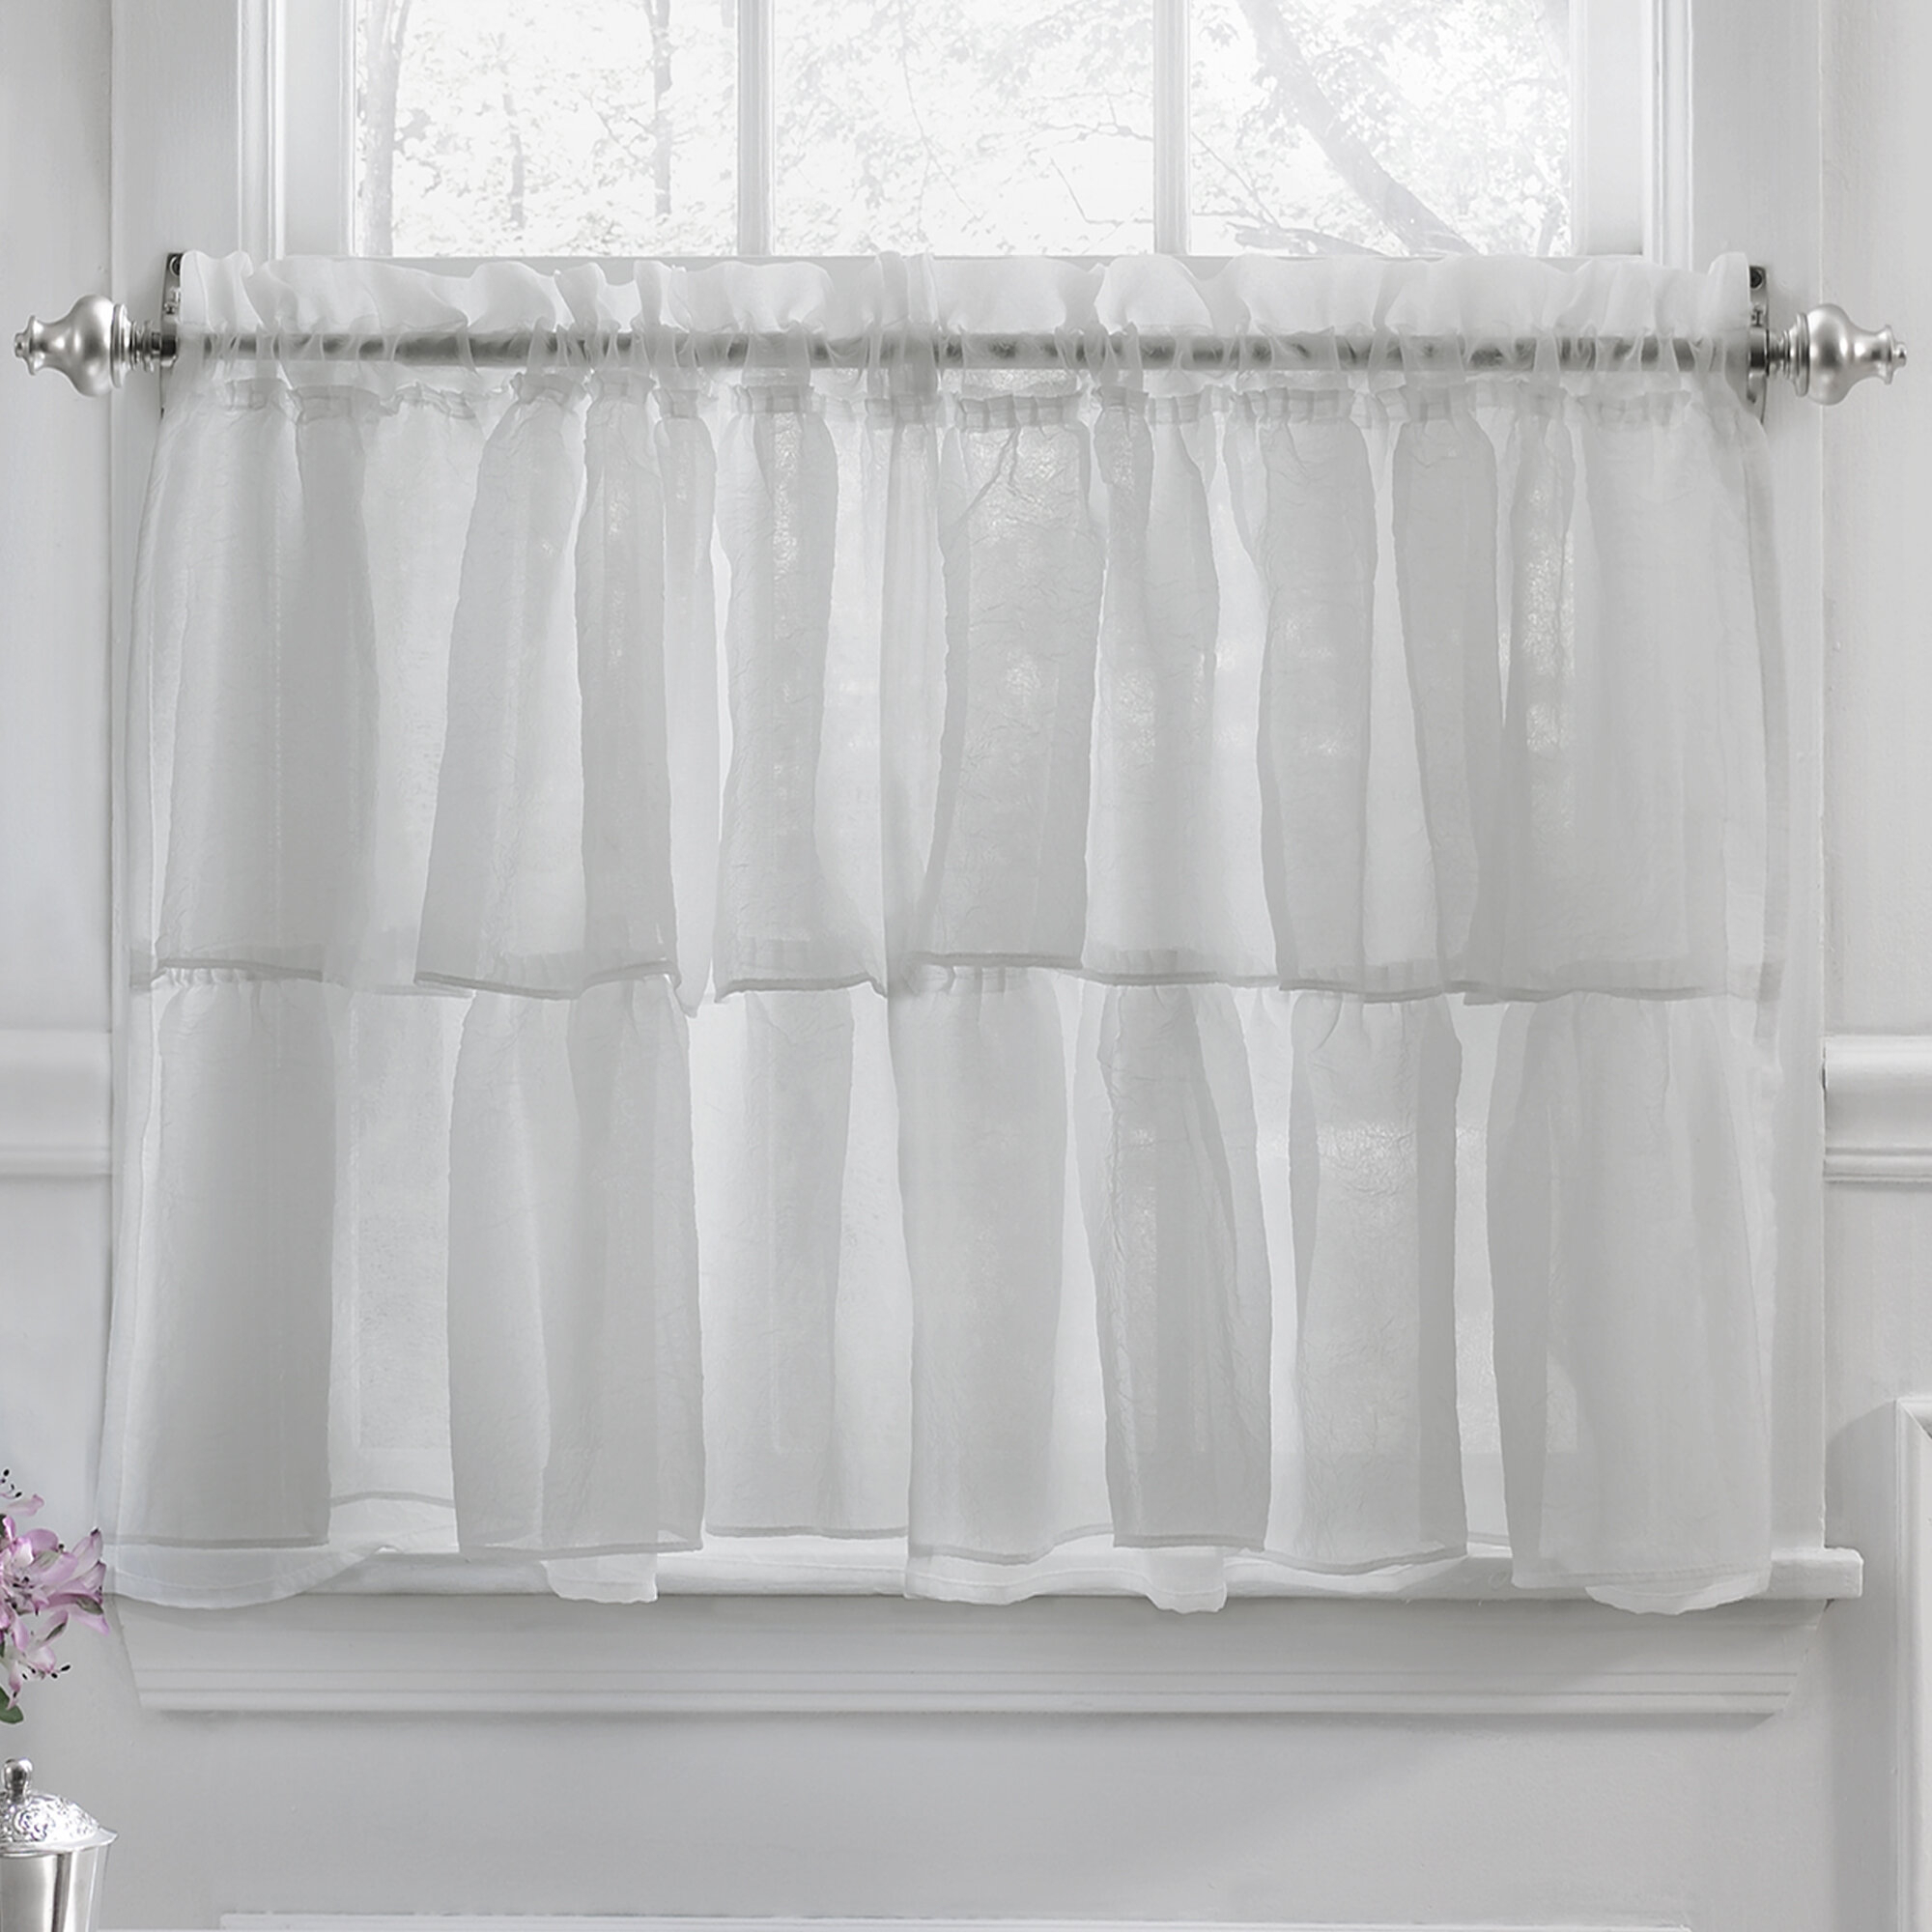 Elegant Crushed Voile Ruffle Kitchen Window Tier Cafe Curtain For Chic Sheer Voile Vertical Ruffled Window Curtain Tiers (View 11 of 20)